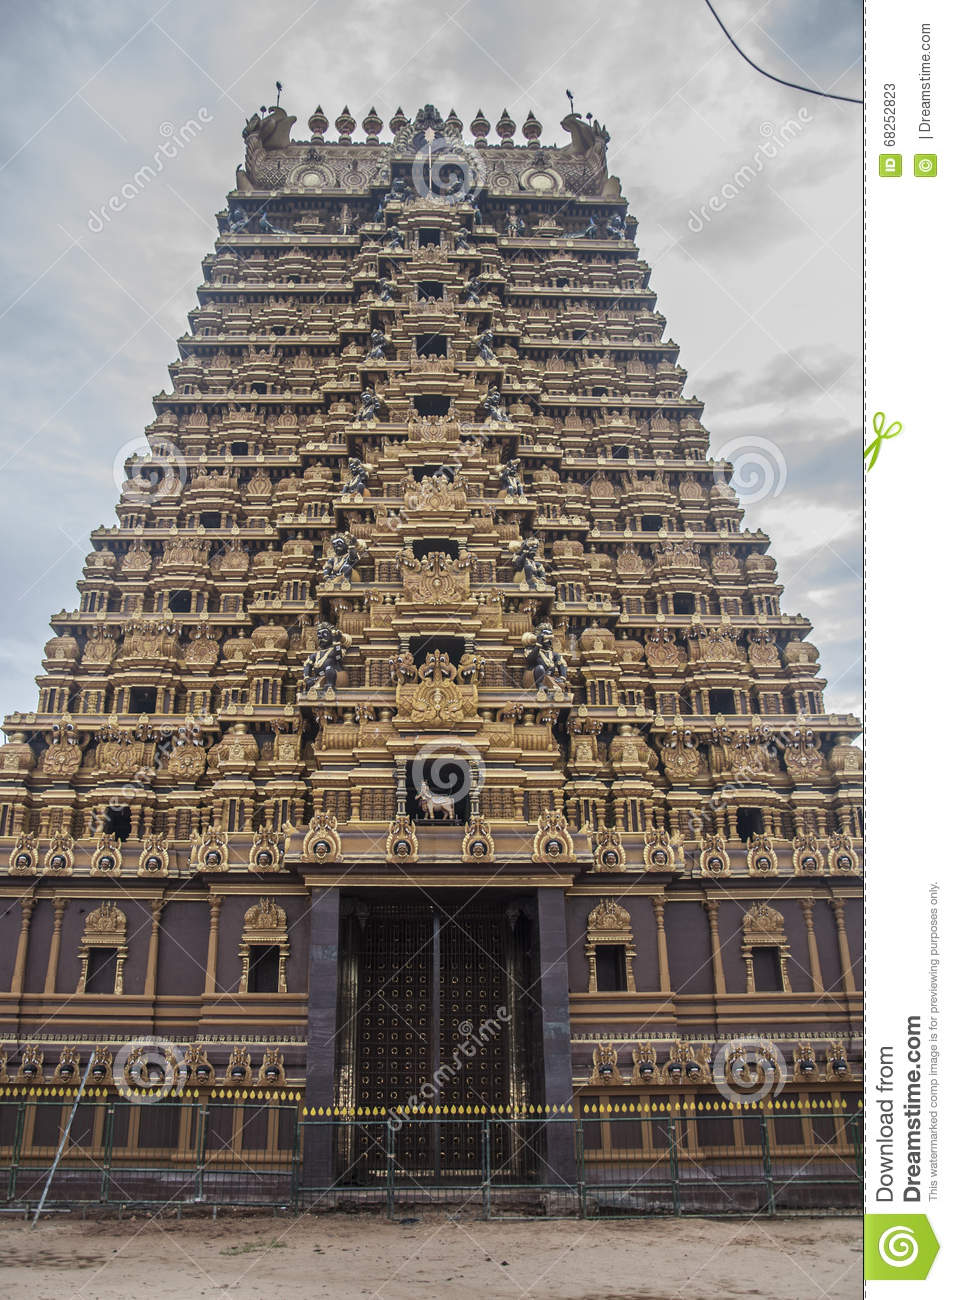 Beautiful pictures of gods and their temple - Architecture Chola Goddesses Gods